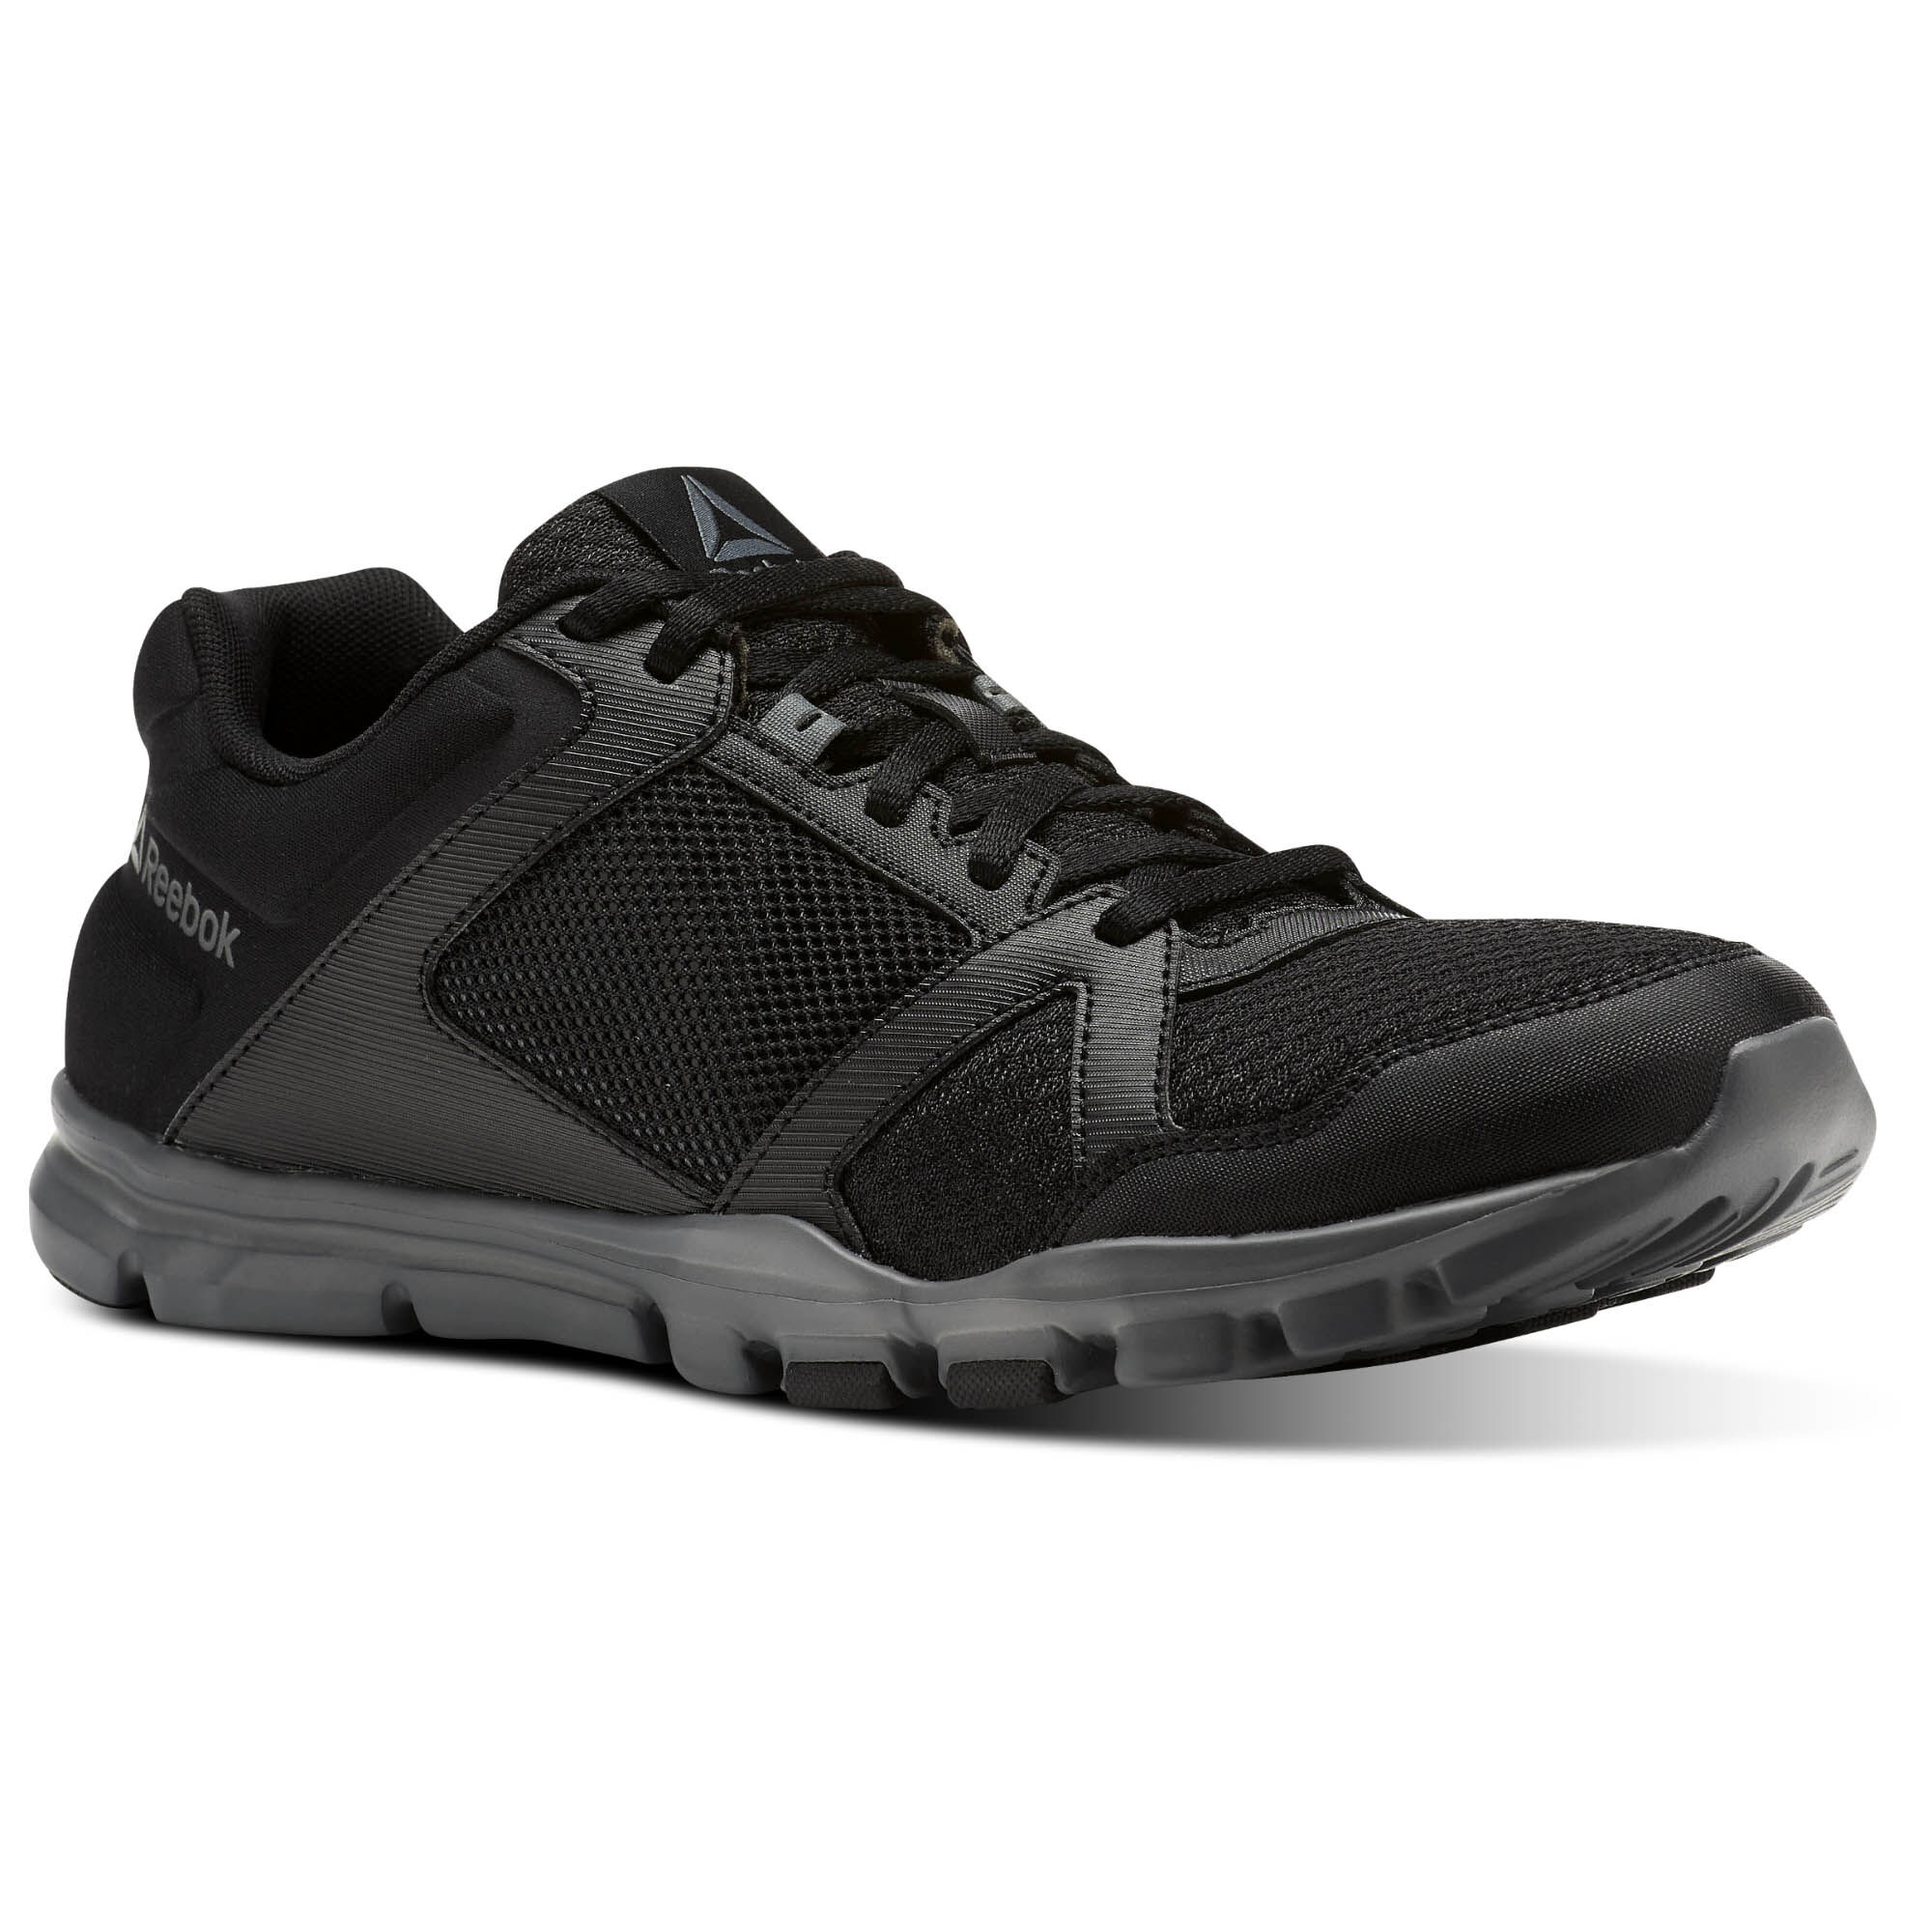 Reebok - Yourflex Train 10 MT Black/Alloy CN1545